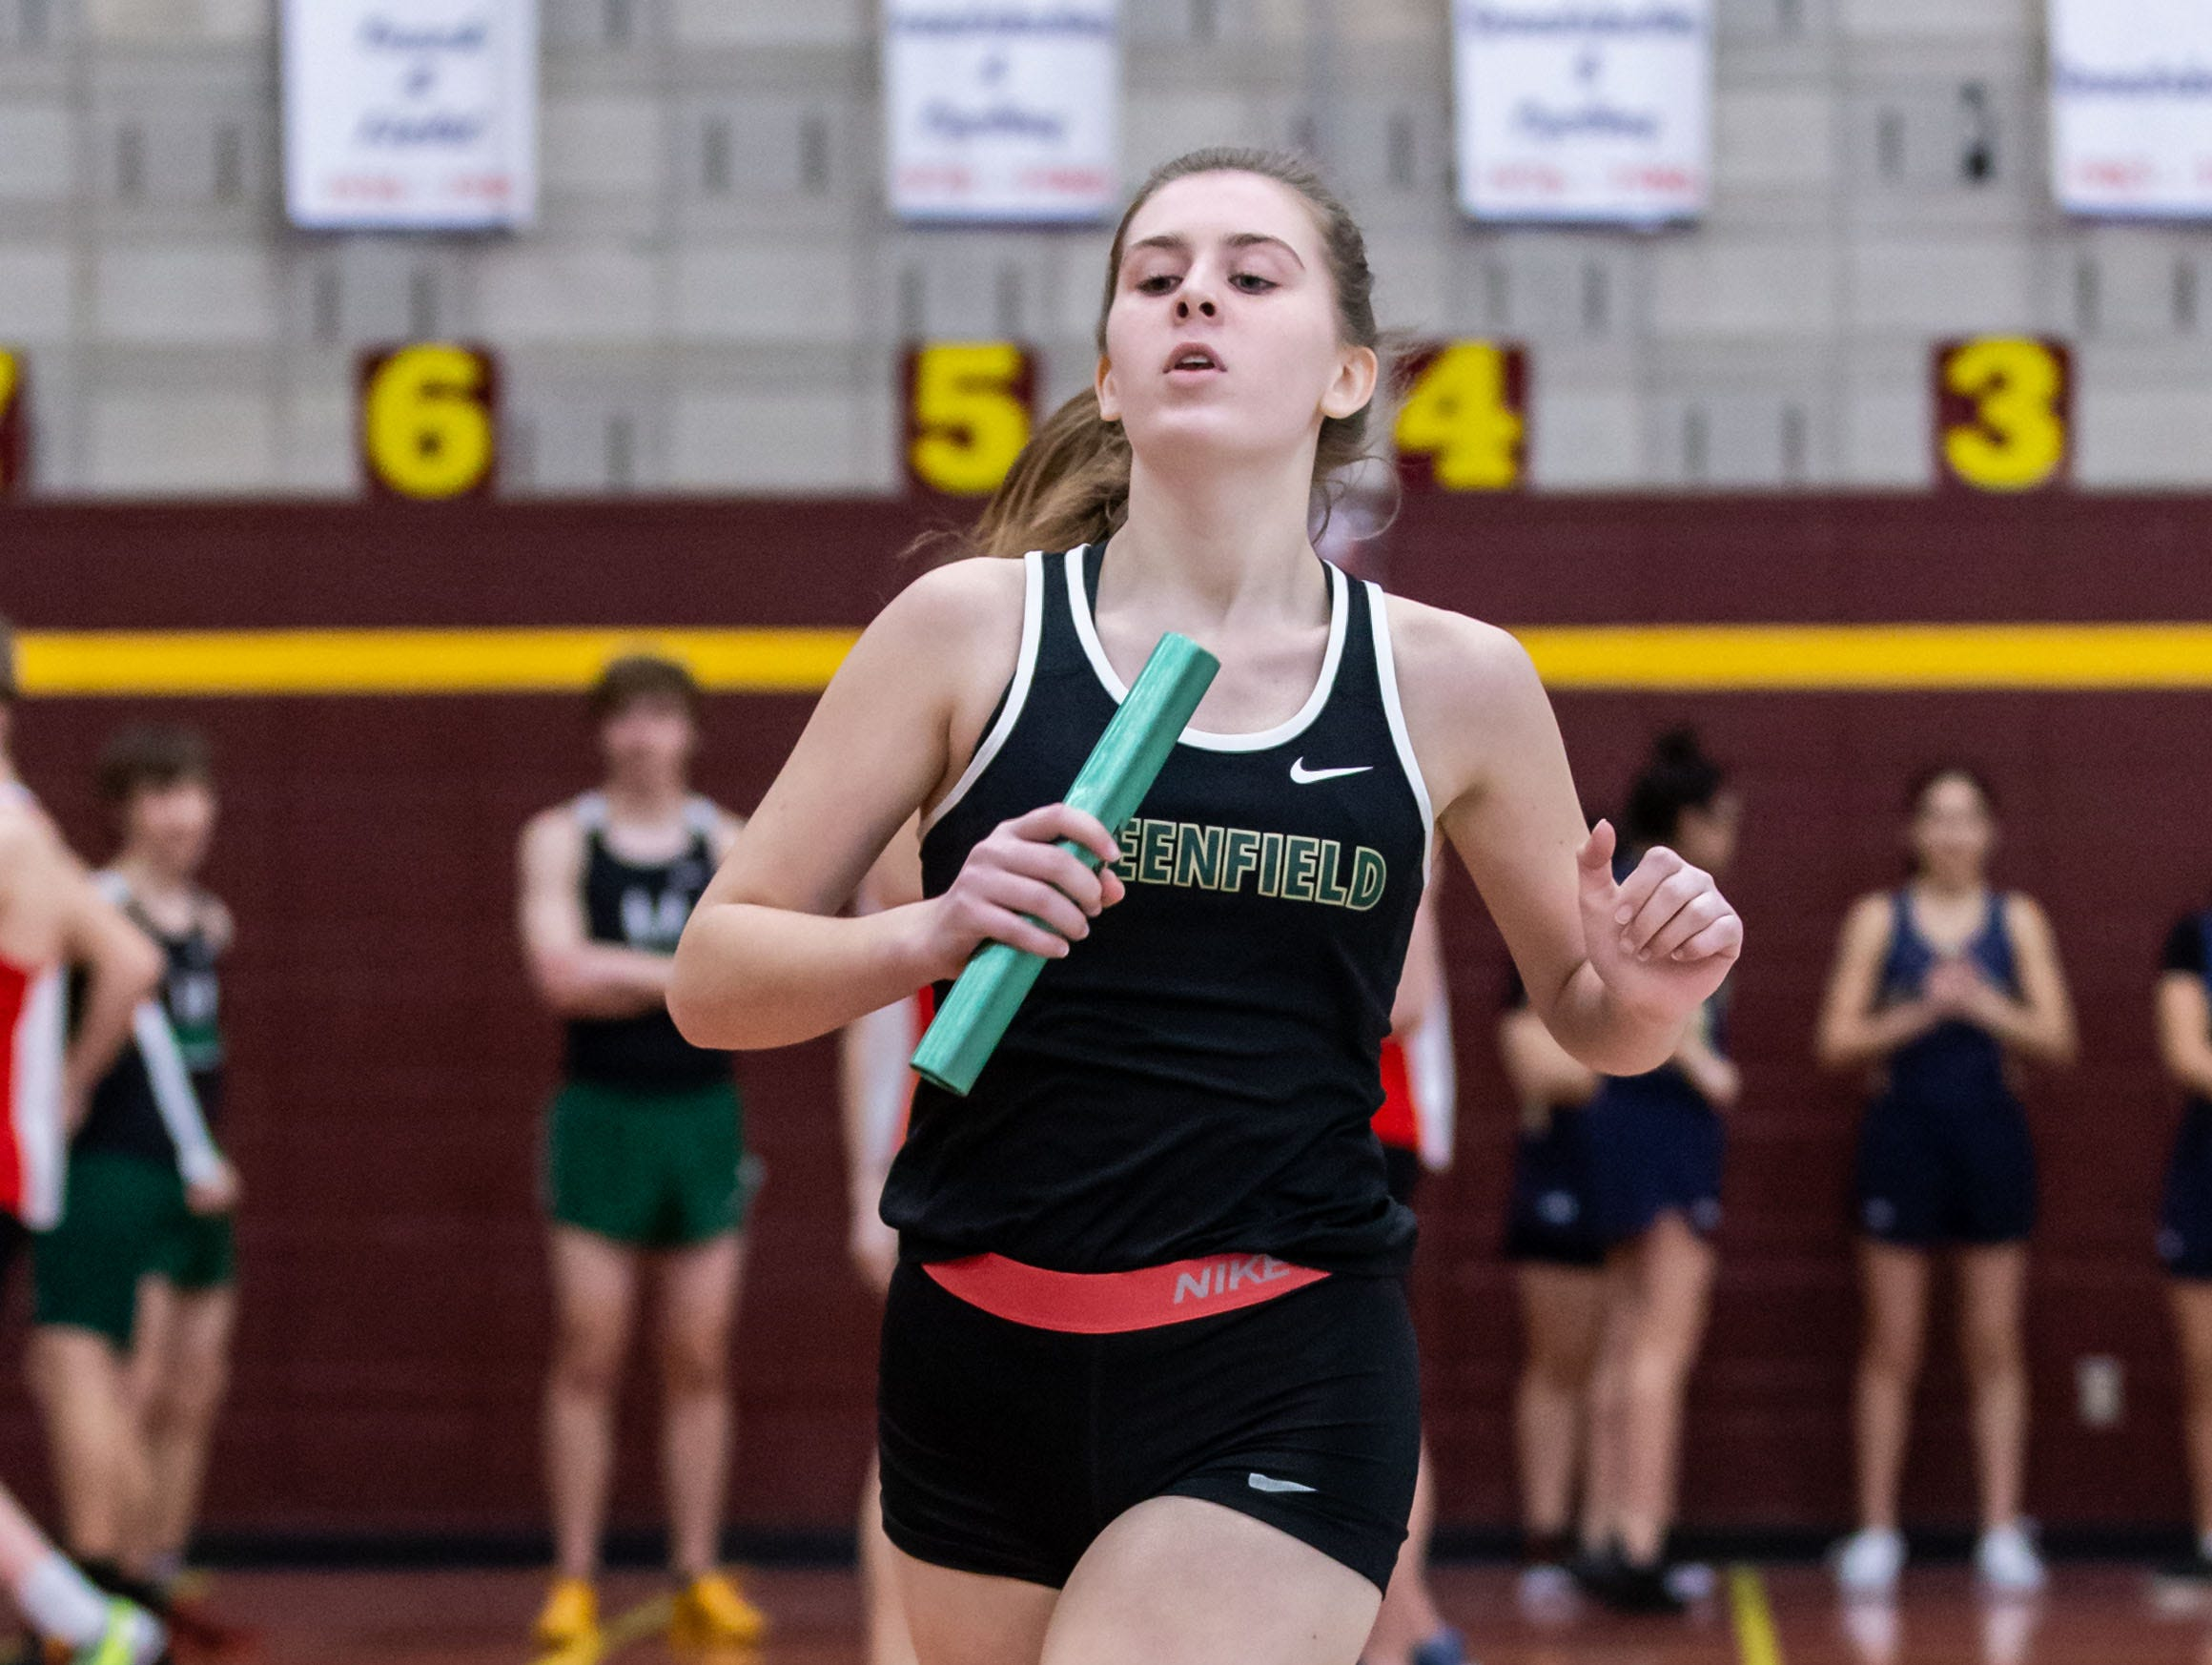 Greenfield's Emily Grill competes in the distance medley relay at the Reinhard Bulldog Relays hosted by West Allis Central on Friday, March 15, 2019.